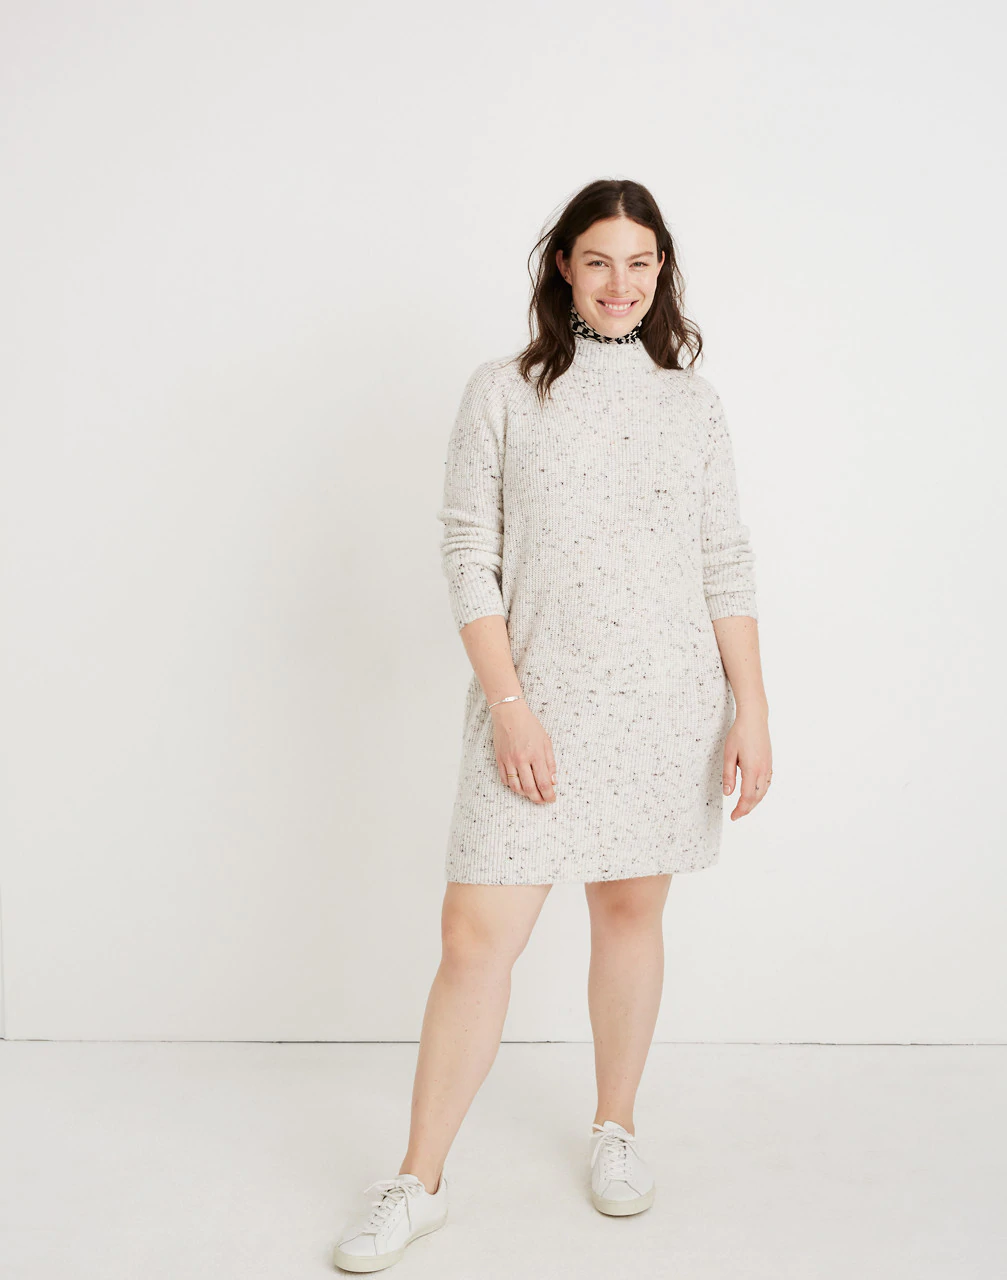 722a3908907 Madewell + Donegal Northfield Mockneck Sweater-Dress